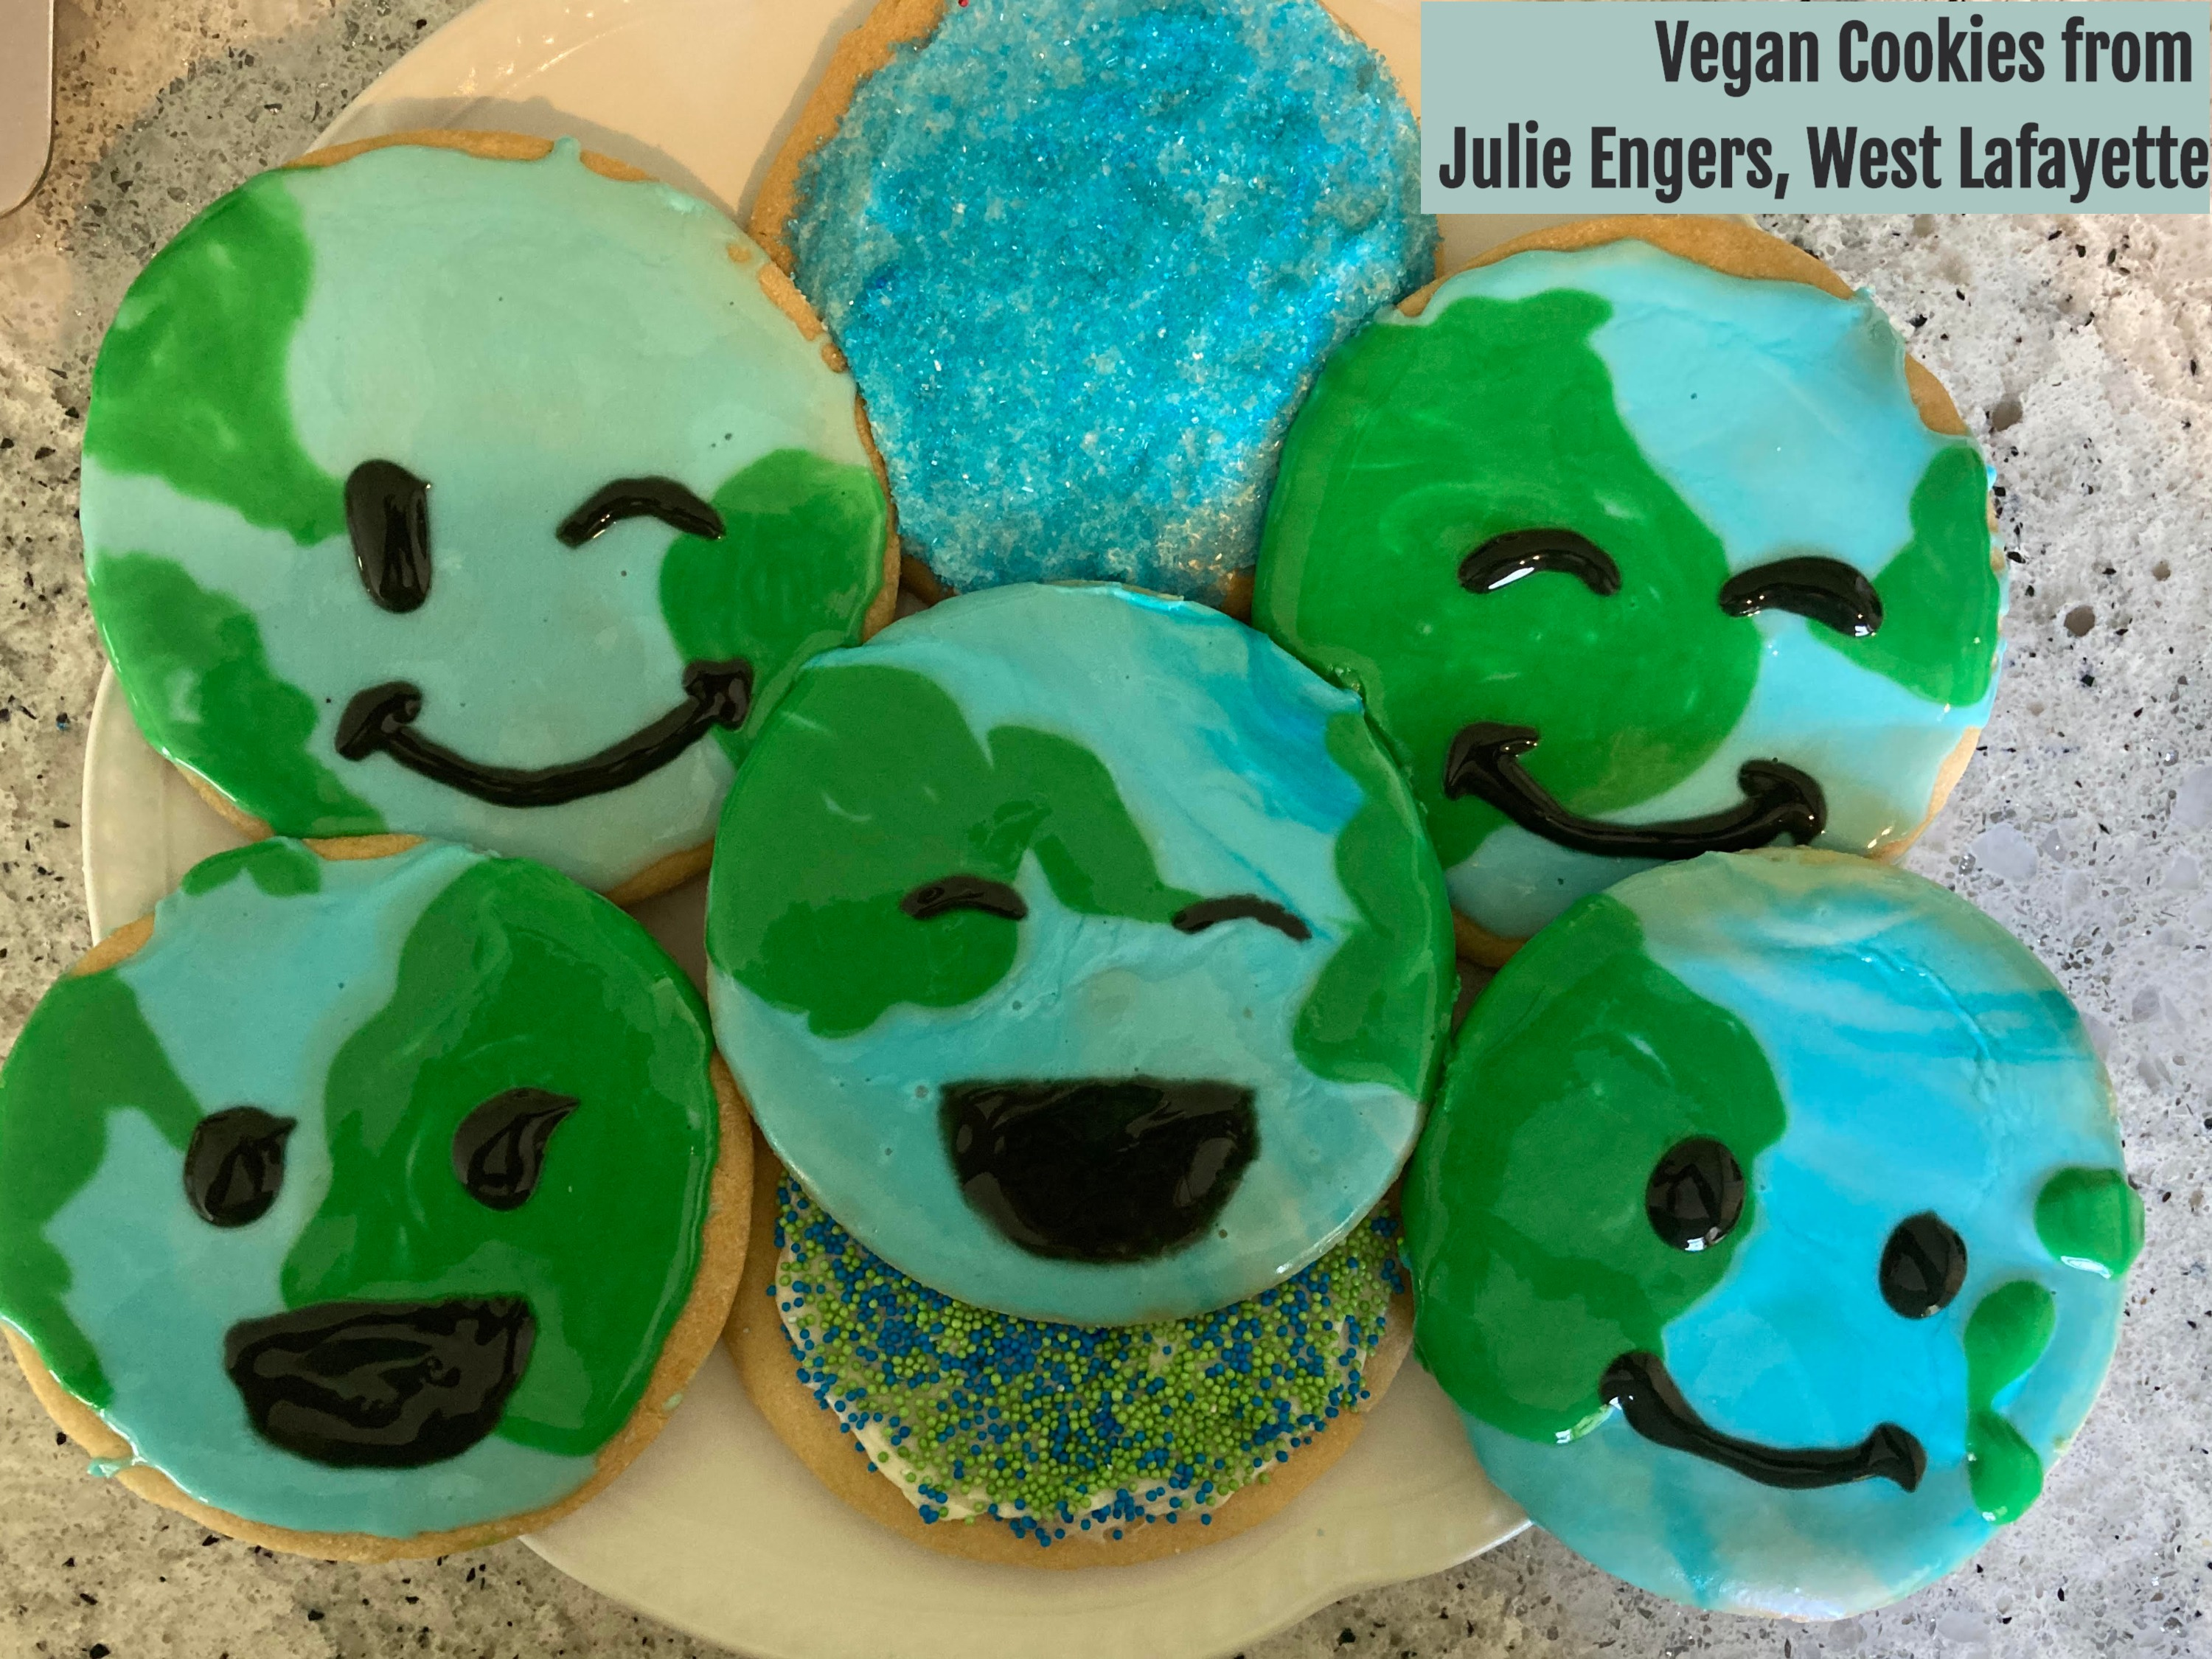 Vegan Cookies from Julie Engers, West Lafayette